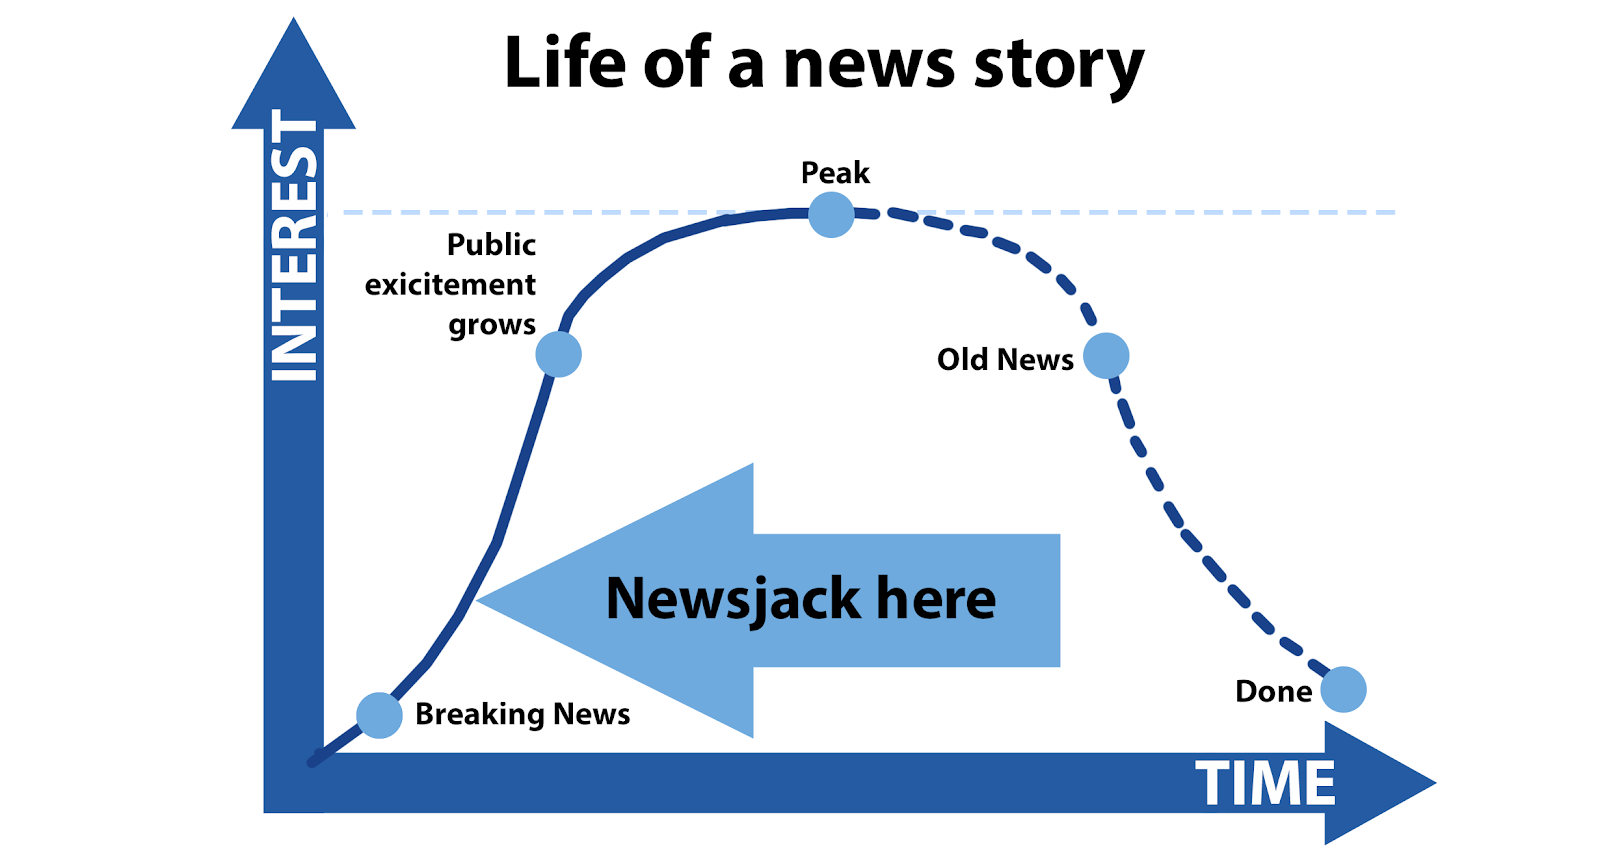 illustration of a life of a news story